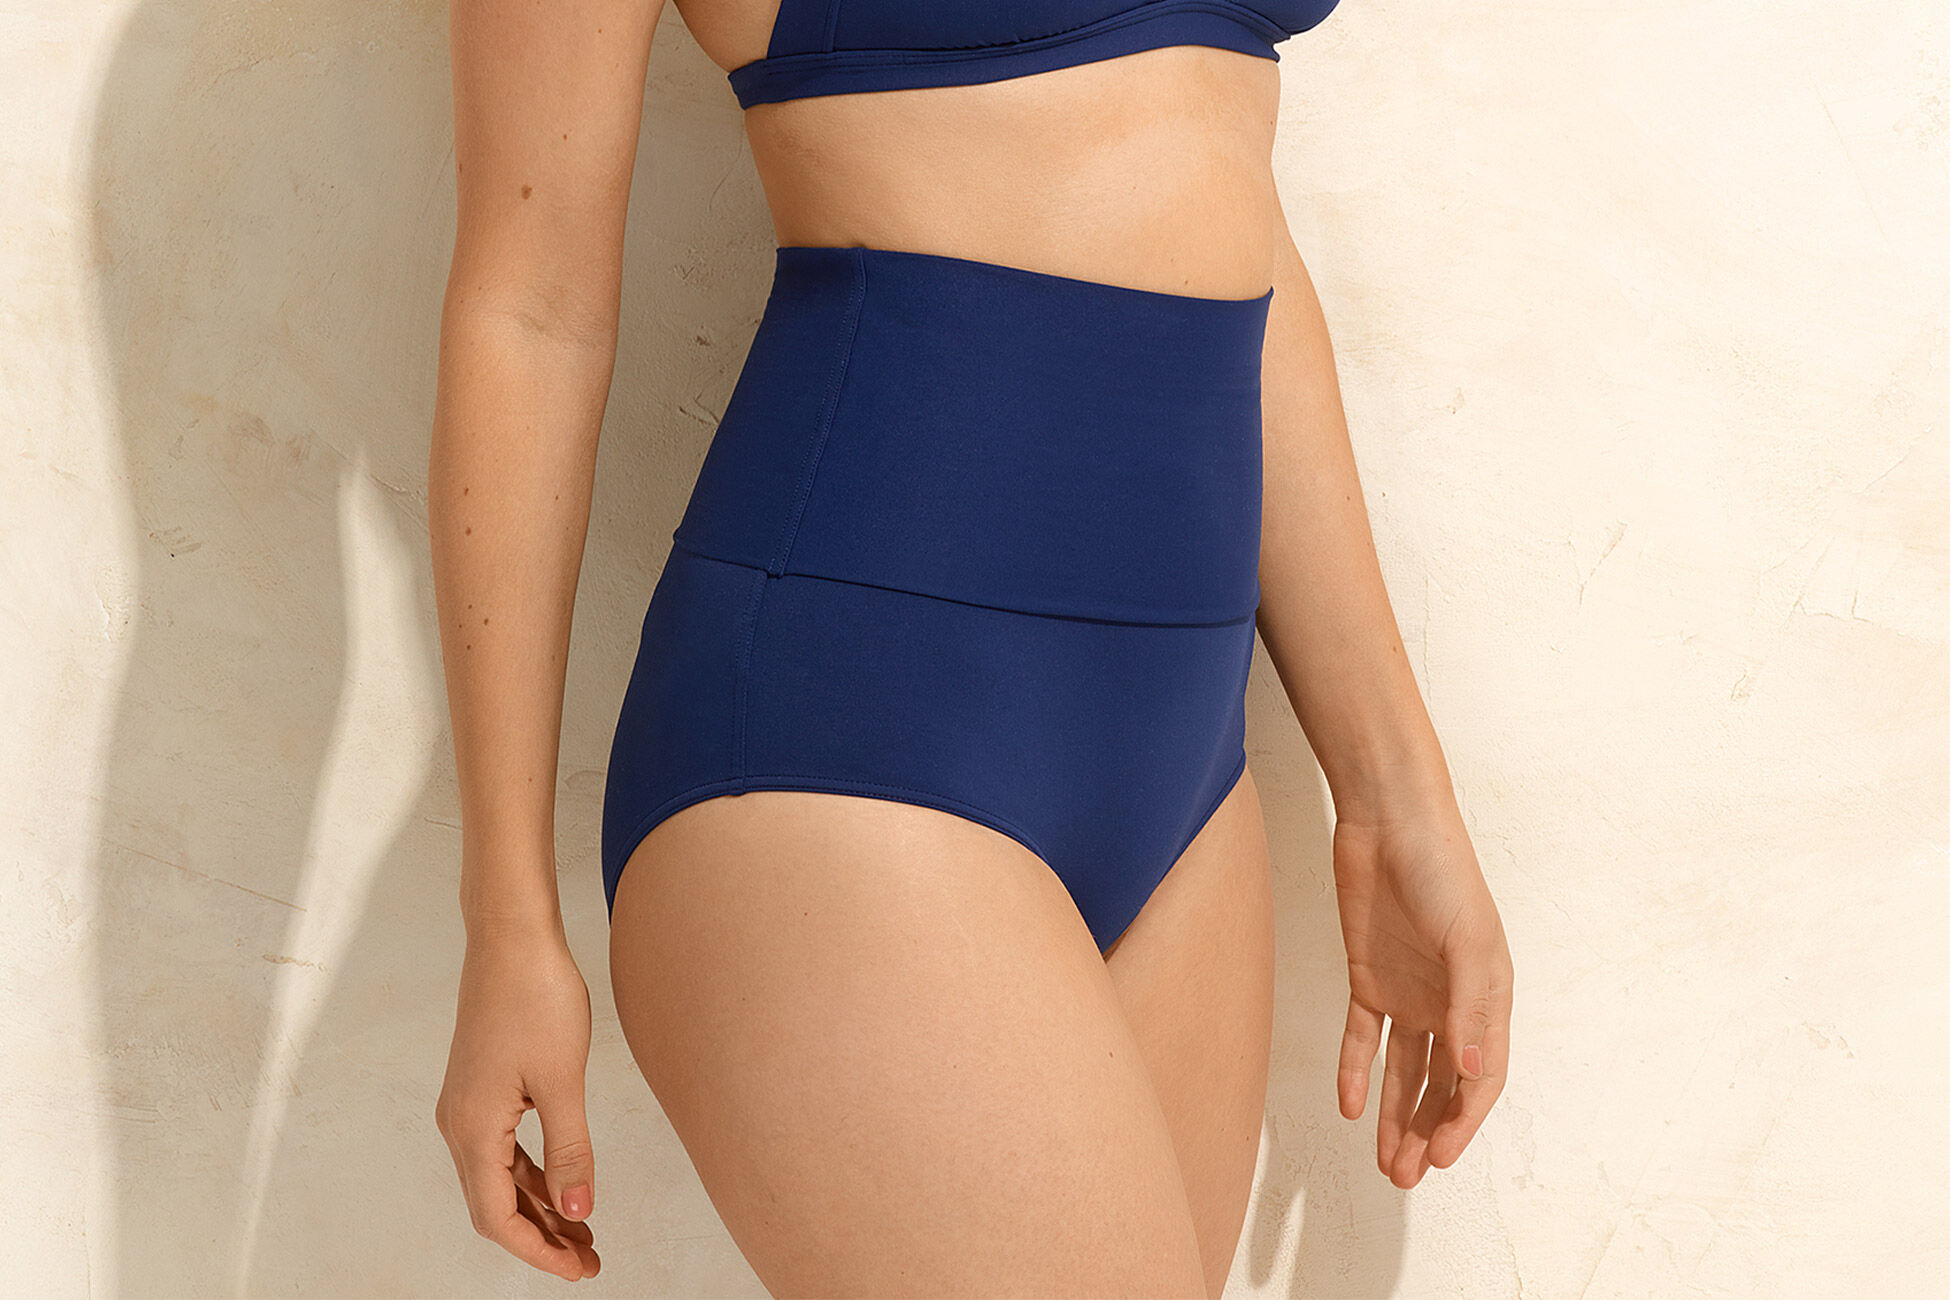 Gredin High-waisted bikini briefs standard view �